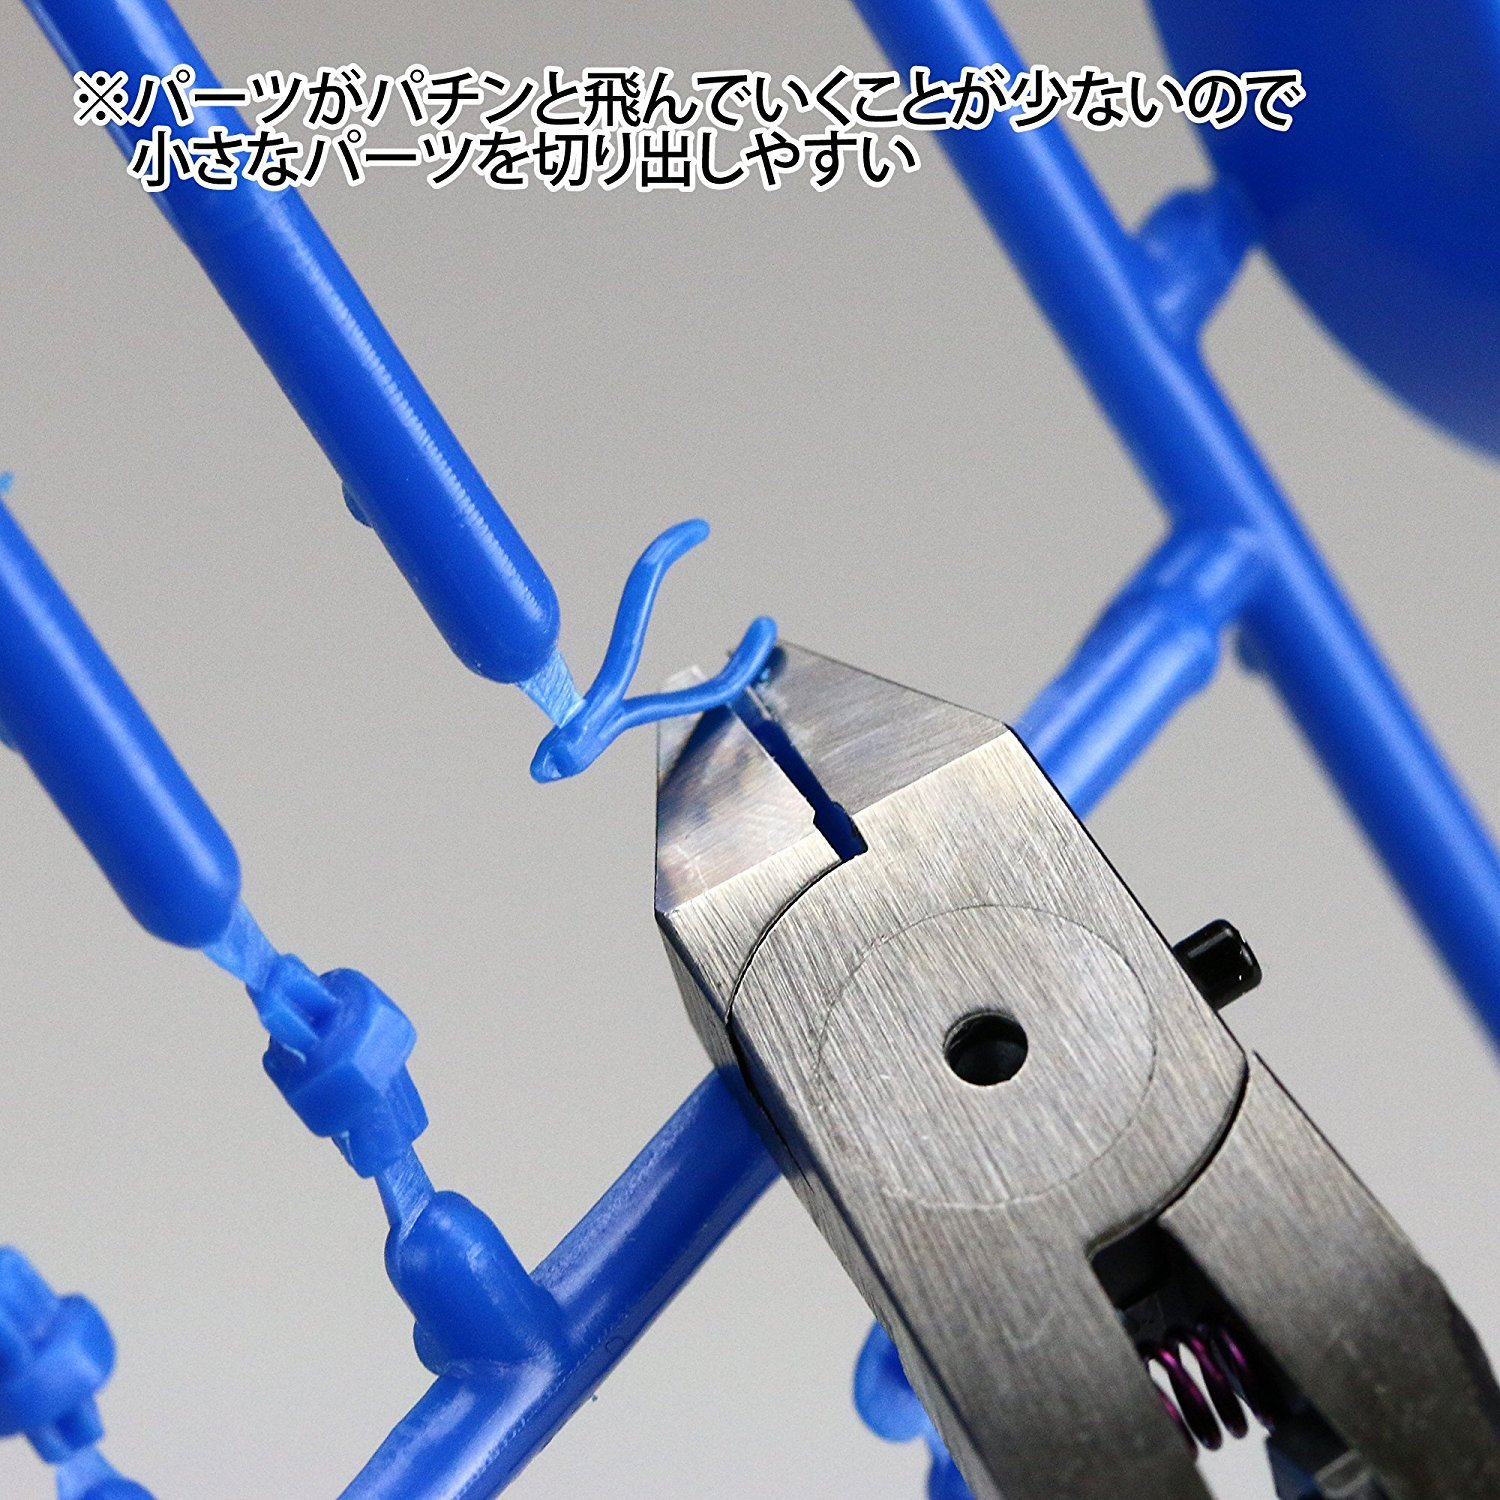 God Hand Ultimate Nipper 5.0 Plastic model Tools for GH-SPN-120 by God Hand (Image #5)